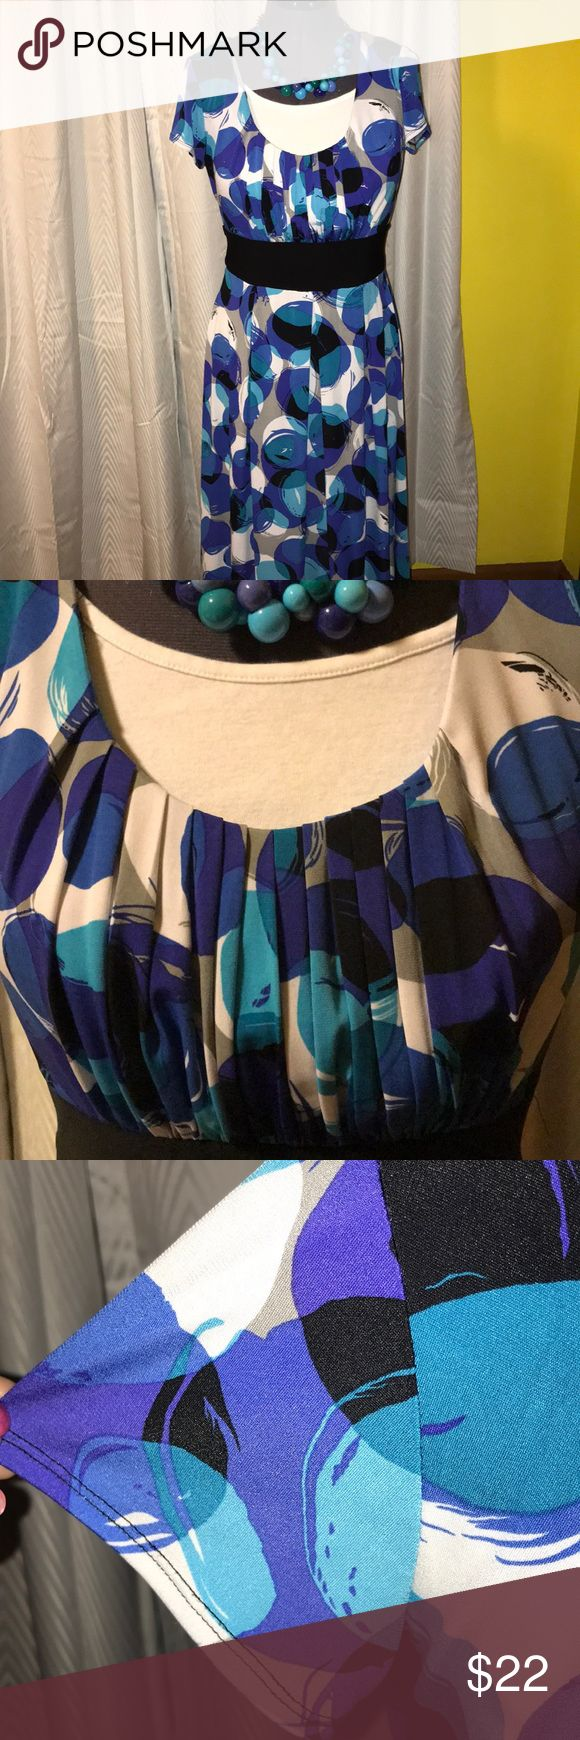 """Colorful dress with sash waist, sz 10 Dress Barn poly dress, size 10, pullover style, sash ties in back. Excellent used condition. Smoke & pet-free. Length is apx 41.5"""" shoulder to hem. In the picture, a white tank top is layered under the dress. The white panel is not part of the dress. The white tank top is common in my pictures to help show where the piece of clothing ends and the dark-colored mannequin/form begins. Dress Barn Dresses Midi"""